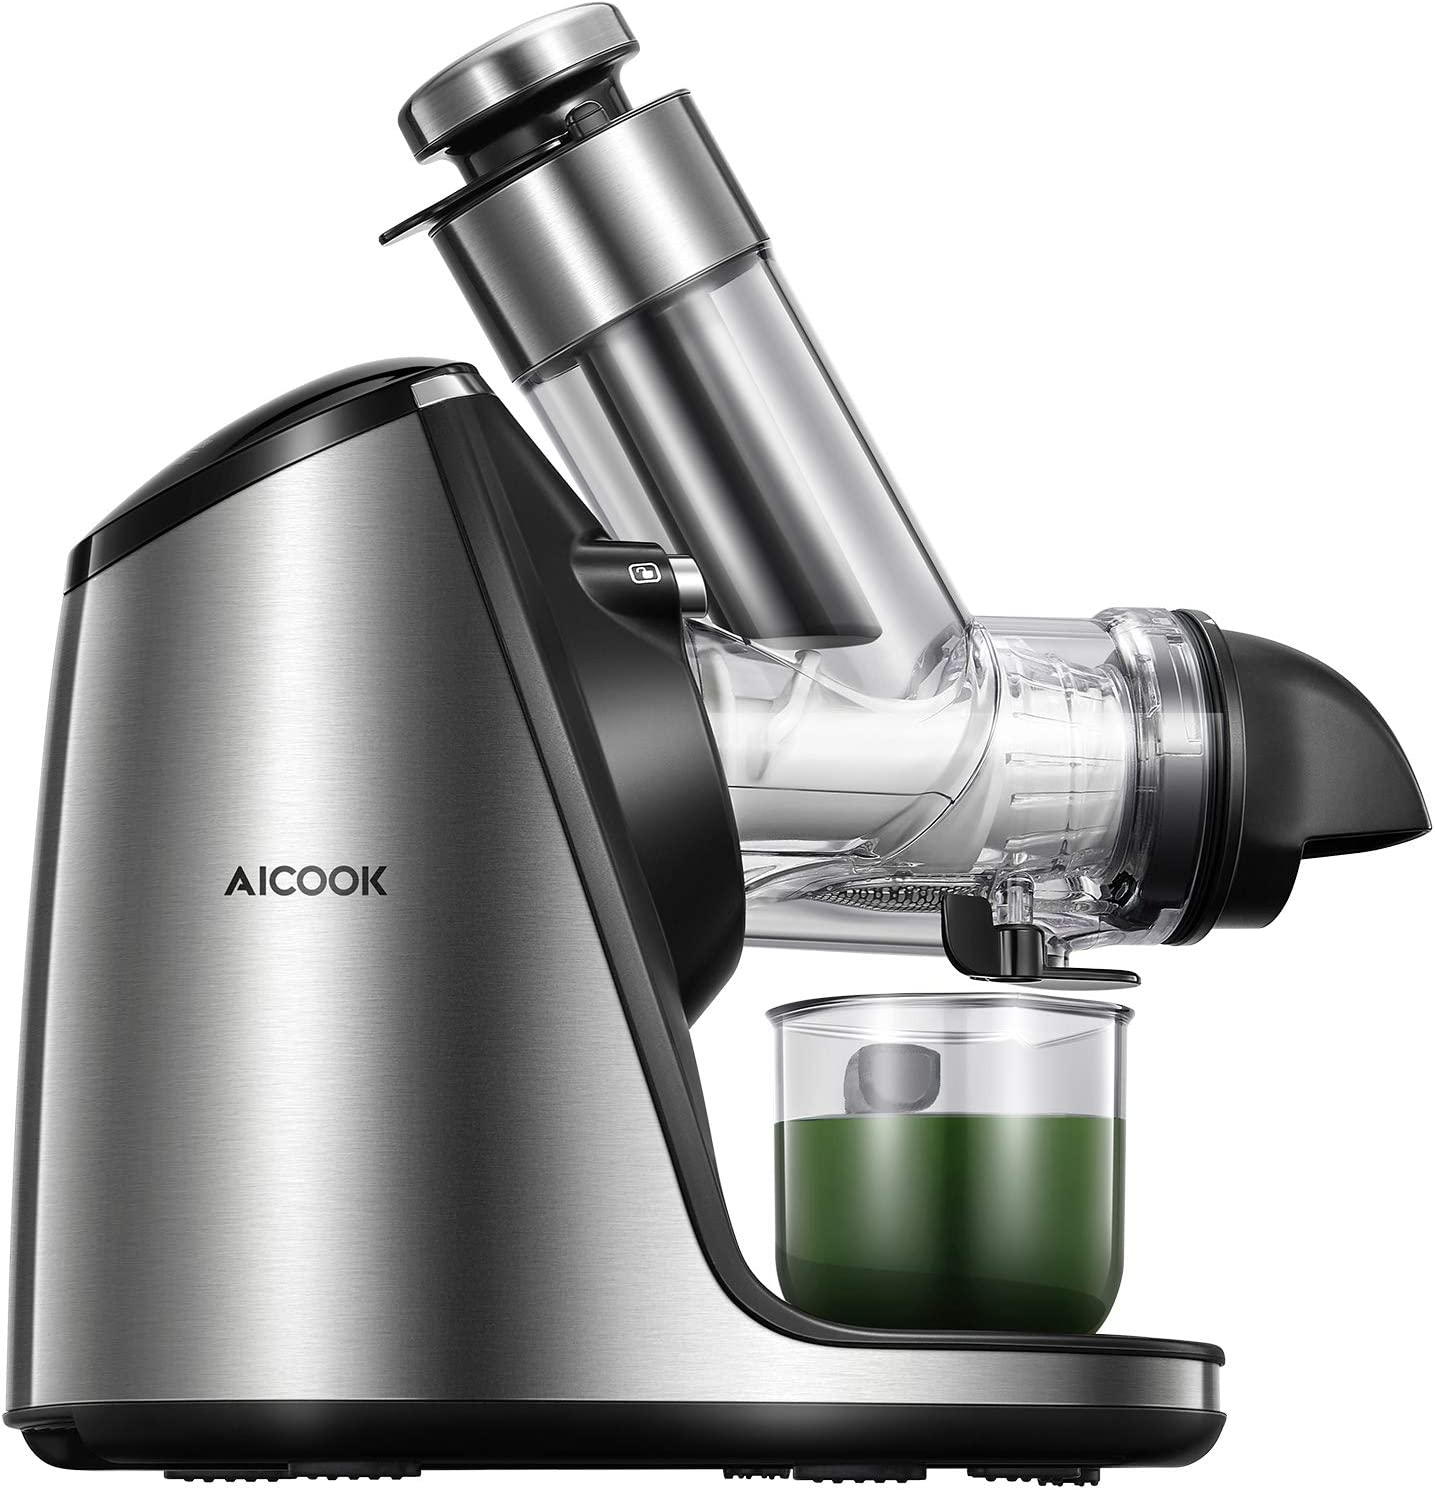 AICOOK Juicer Machines with 3in Large Feed Chute, 200W Slow Masticating Juicer Extractor Easy to Clean. Reverse Function & Quiet Motor, Ceramic Auger, Ice Cream ACC & Recipes for Fruits and Vegtables